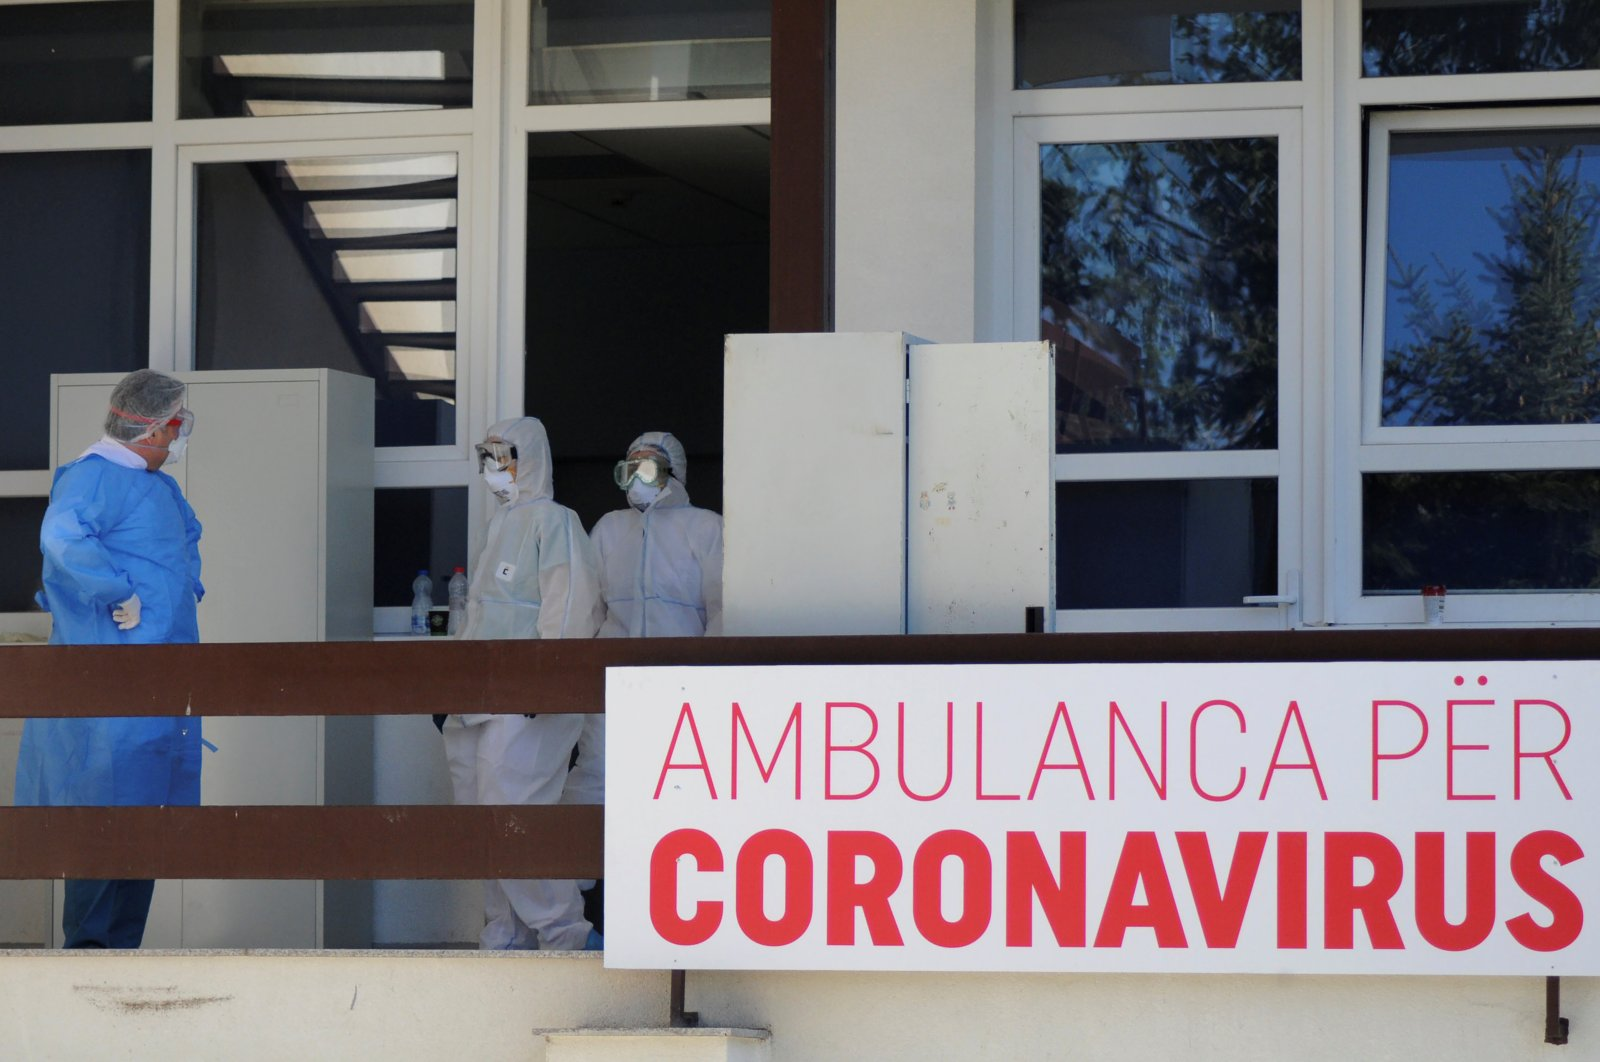 Medical workers stand in front of ambulance for coronavirus (COVID-19) patients, Pristina, March 16, 2020. (REUTERS Photo)